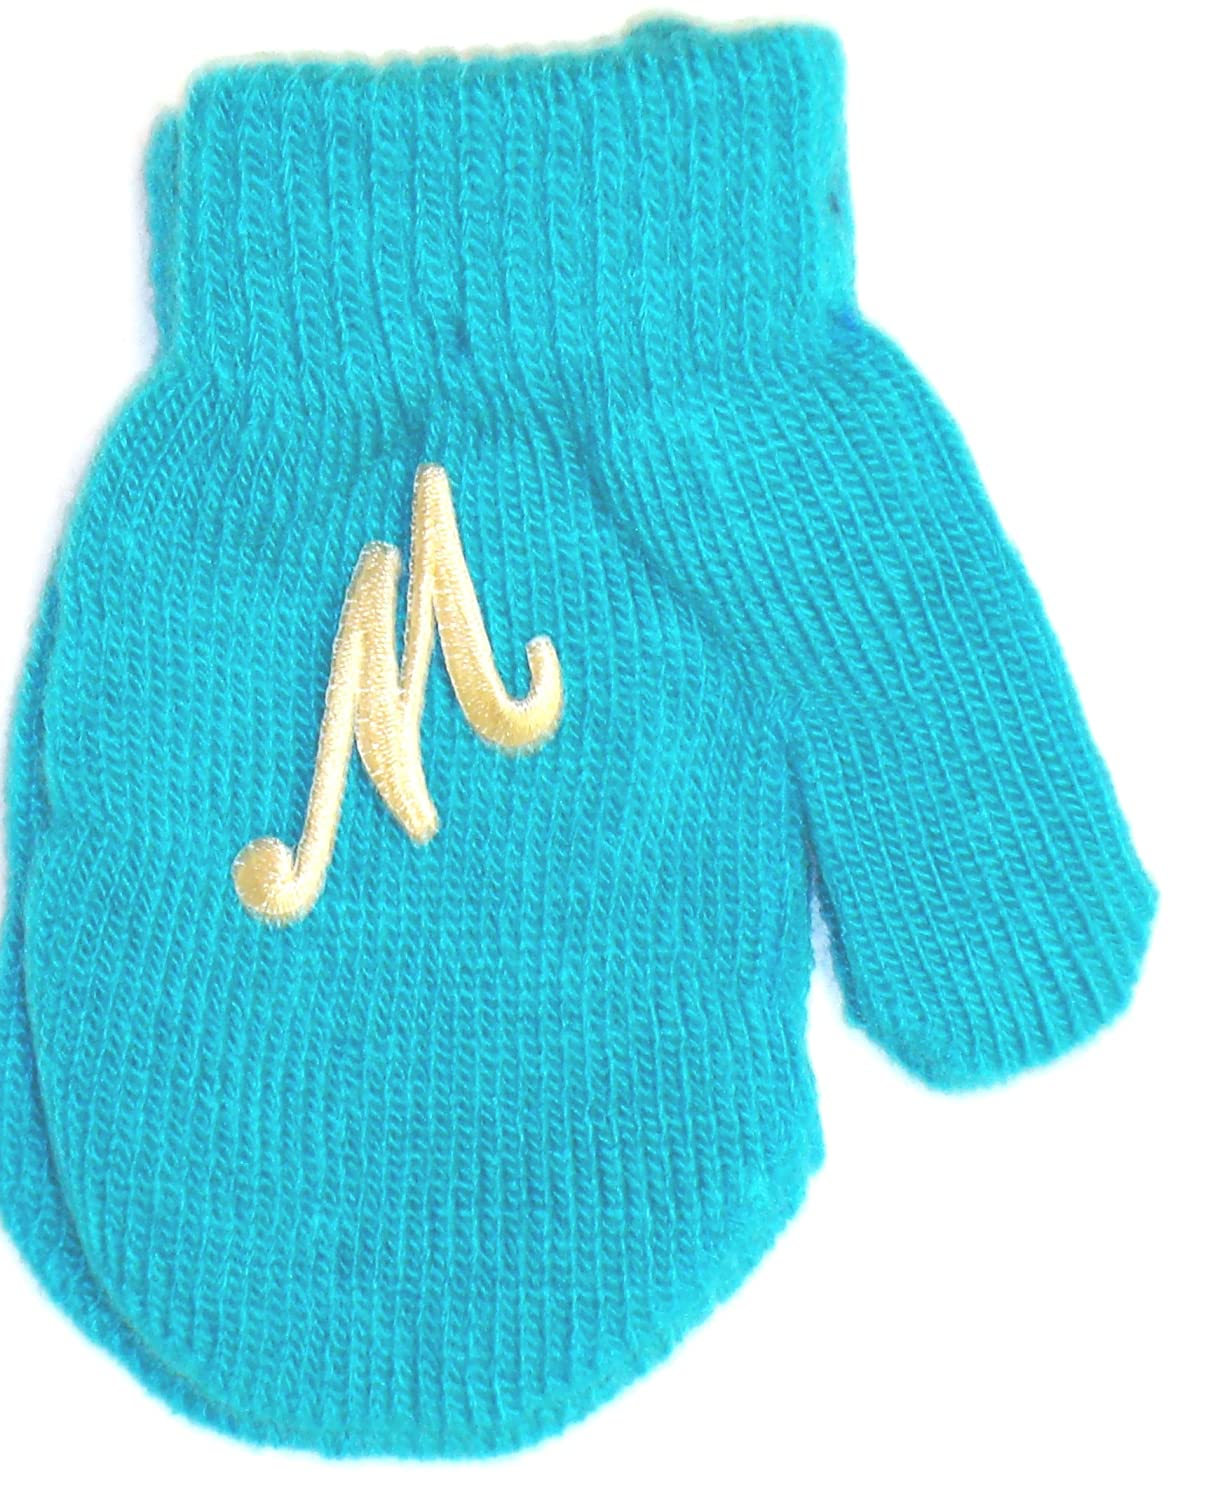 Blue Mitten with Chosen Ivory Monogram for Ages 0-12 Months.